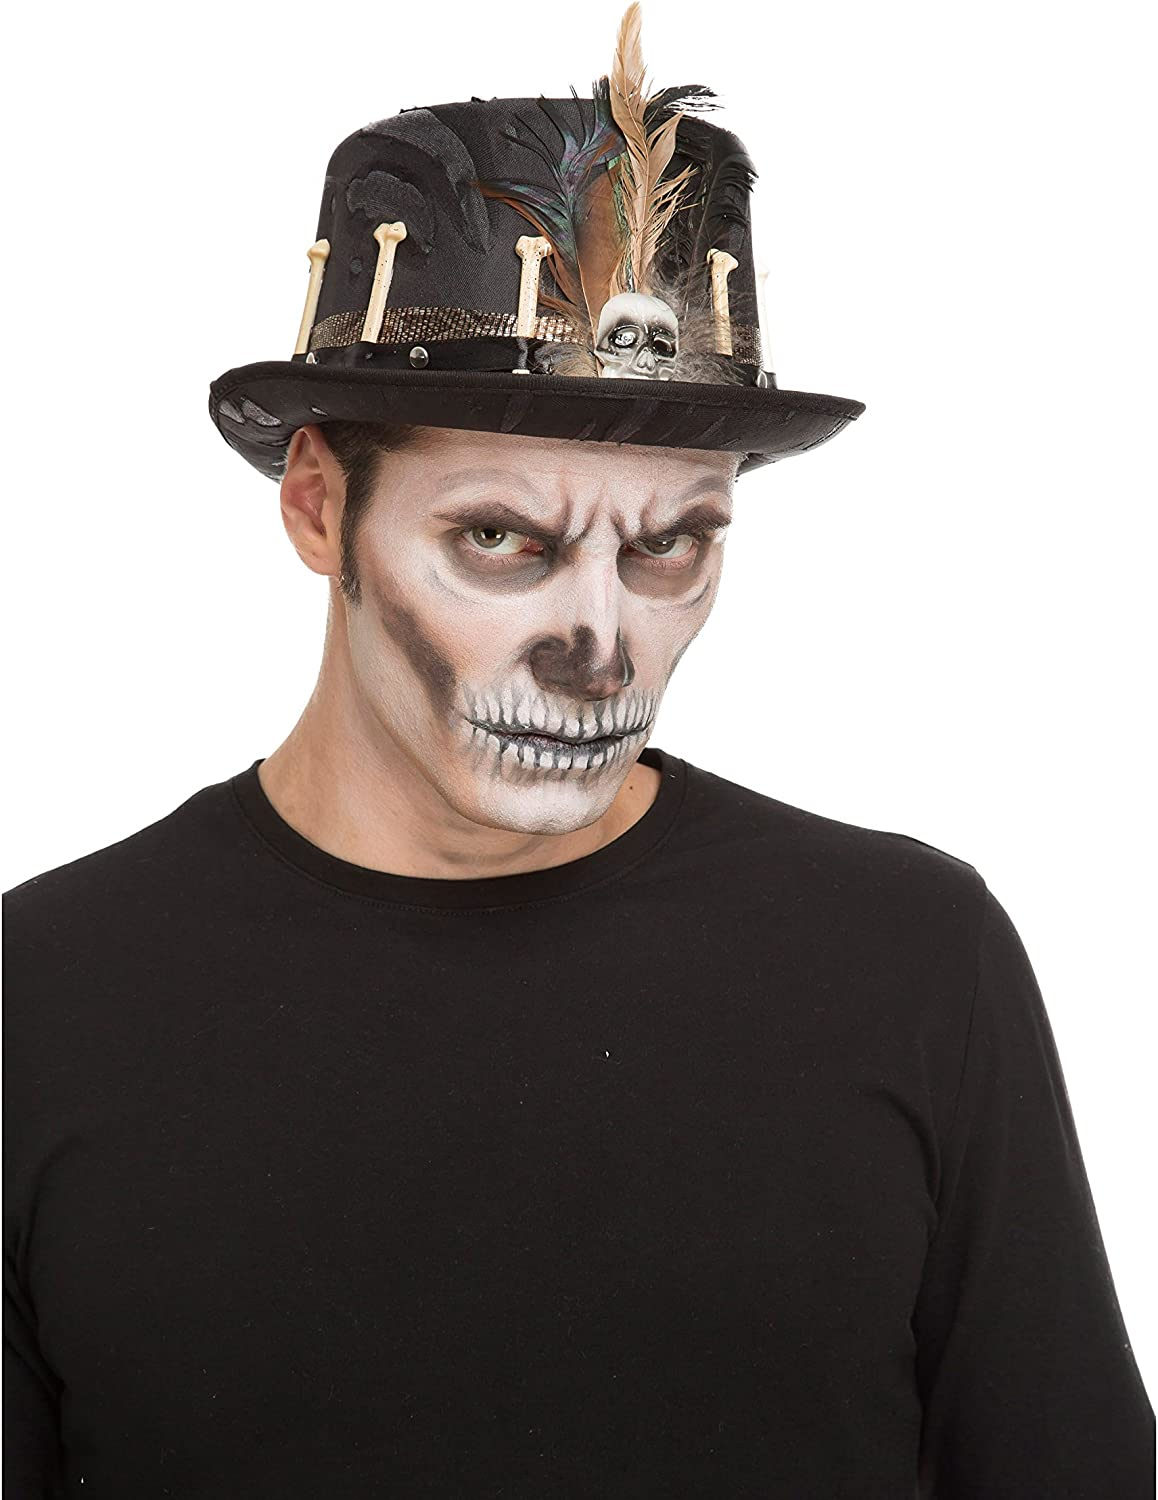 Desconocido My Other Me-204613 Chistera voodoo, Talla única (Viving Costumes 204613)